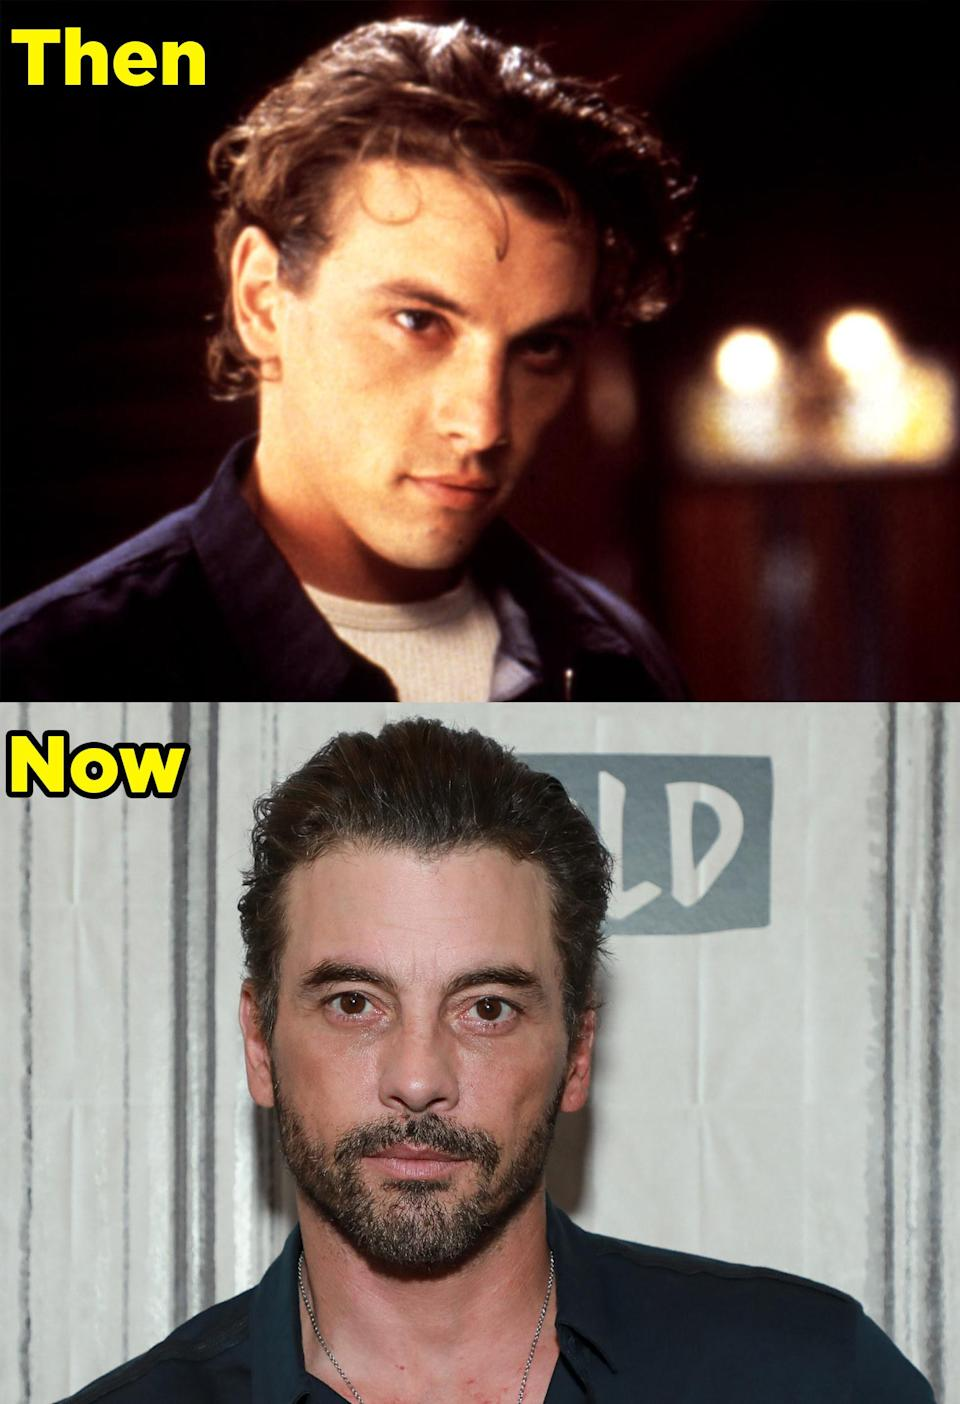 What he's up to now: Aside from his role in Scream, Skeet is best known for his roles in The Craft and As Good As It Gets. He continued acting and starred in the CBS series Jericho and played various roles on Robot Chicken. He also appeared in Miracles, Escape Room, and Law & Order: LA. Most recently, he starred on Riverdale as FP Jones and is starring beside Tom Hanks in a new film calledFinch.